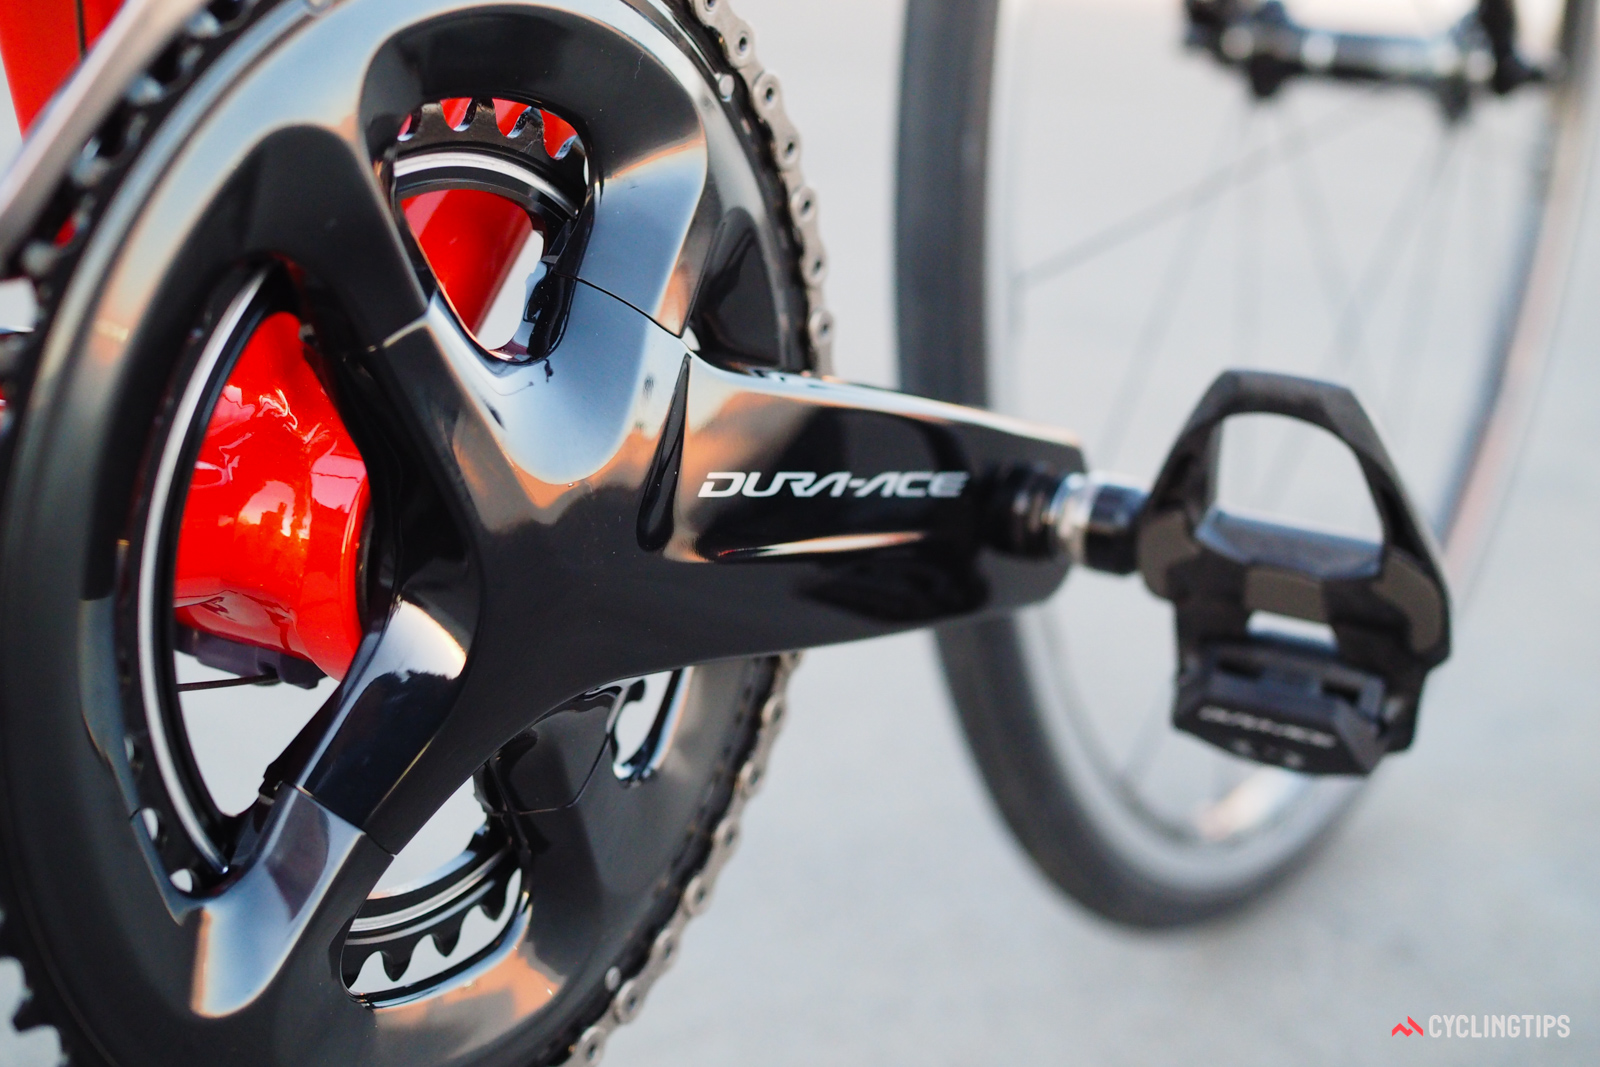 Still made of forged aluminum, the updated crankarm shape is designed to provide extra support to the chainring tab at top right, which Shimano says receives the highest loads when pedaling.